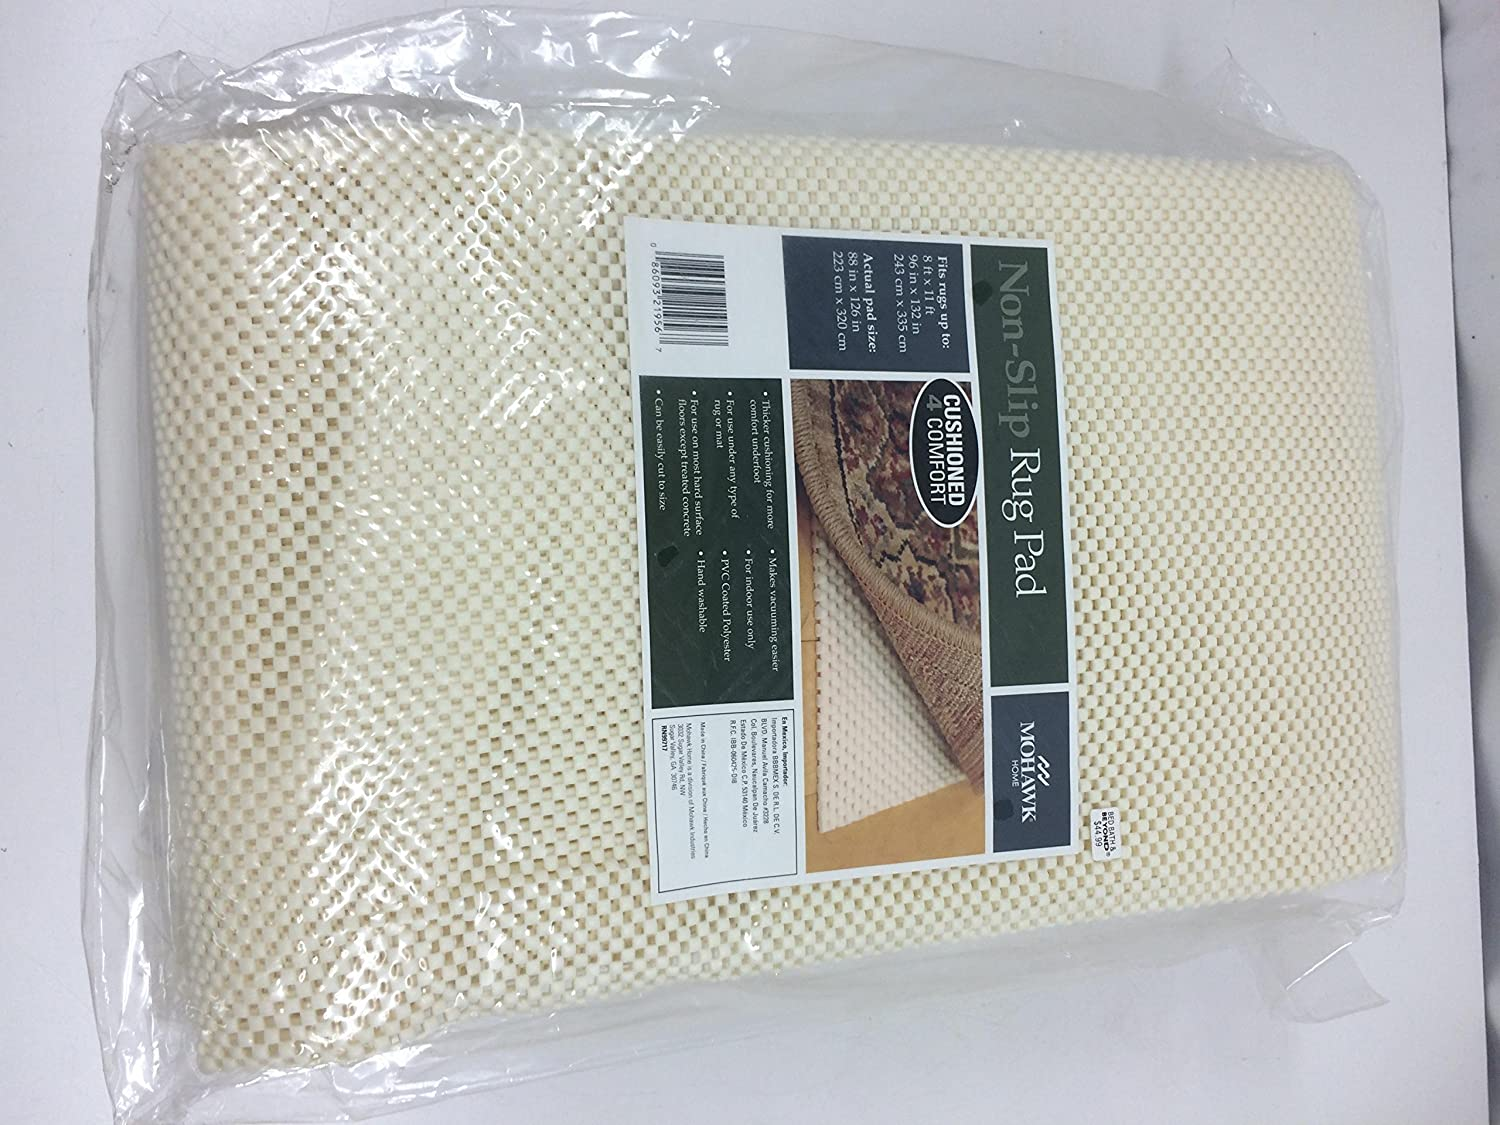 Mohawk Home Non-Slip Rug Pad - fits 8 ft x 11 ft, Actual Size 88 in x 126 in